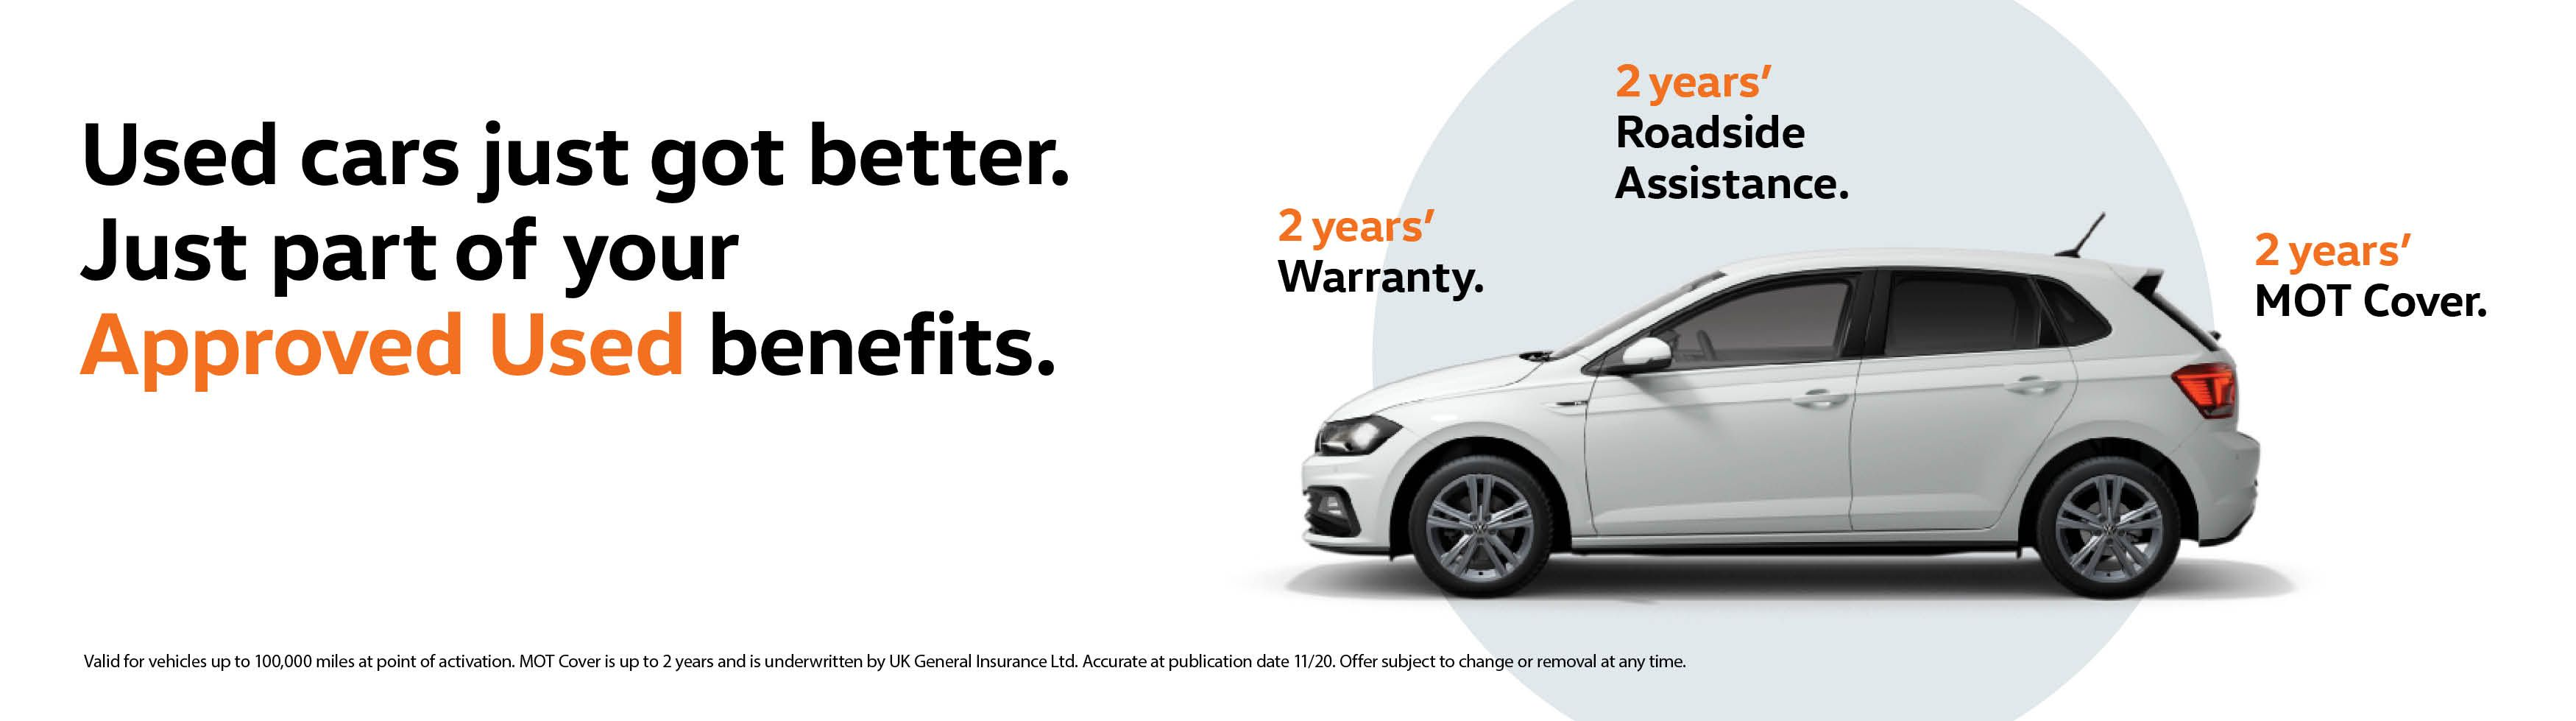 Approved Used cars just got better!